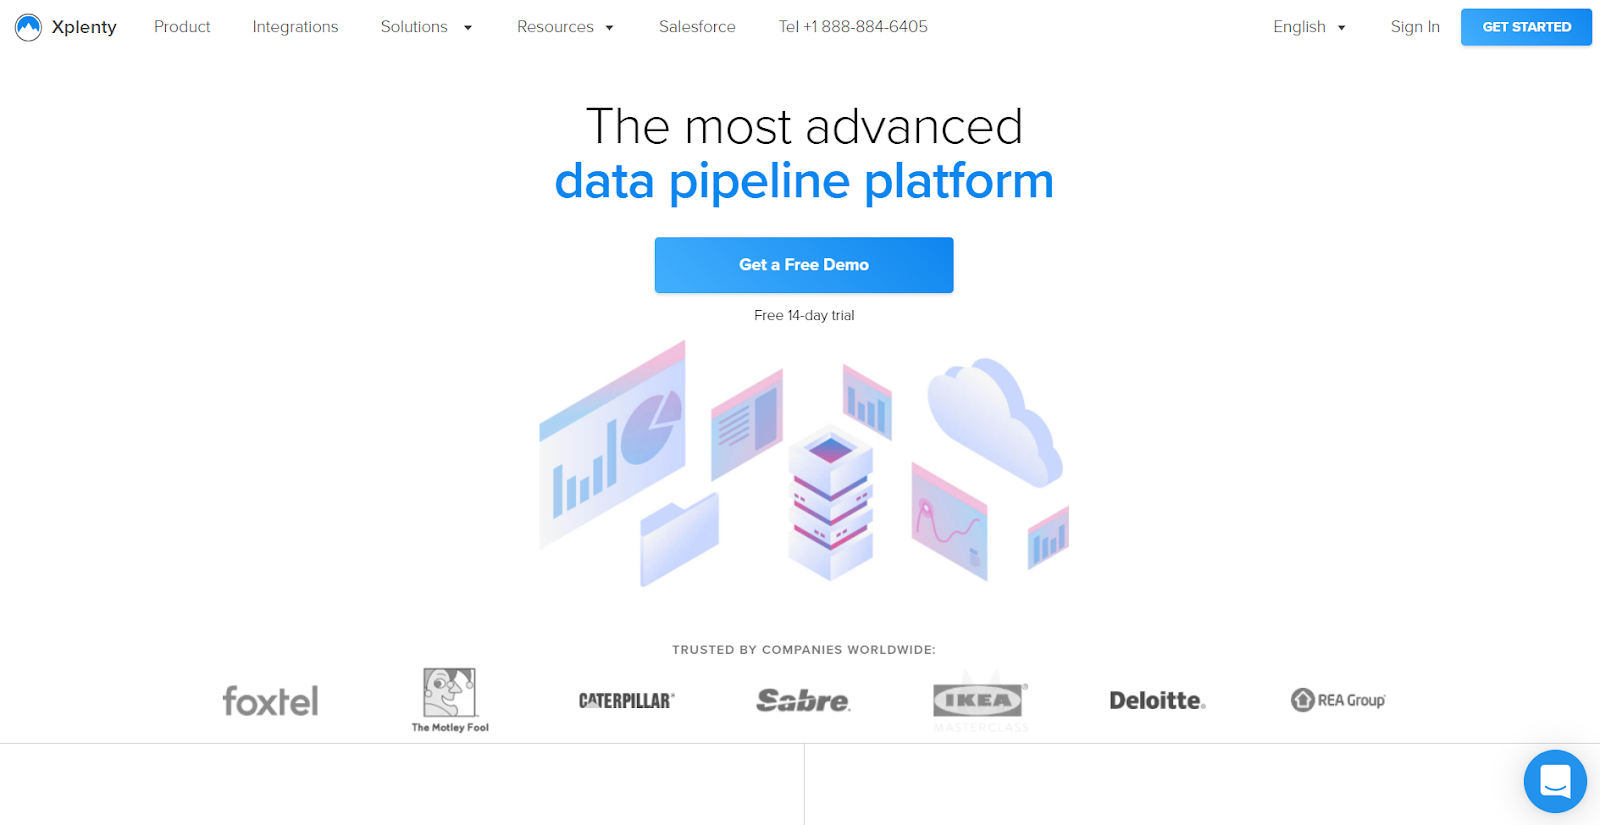 Xplenty is one of the big data tools